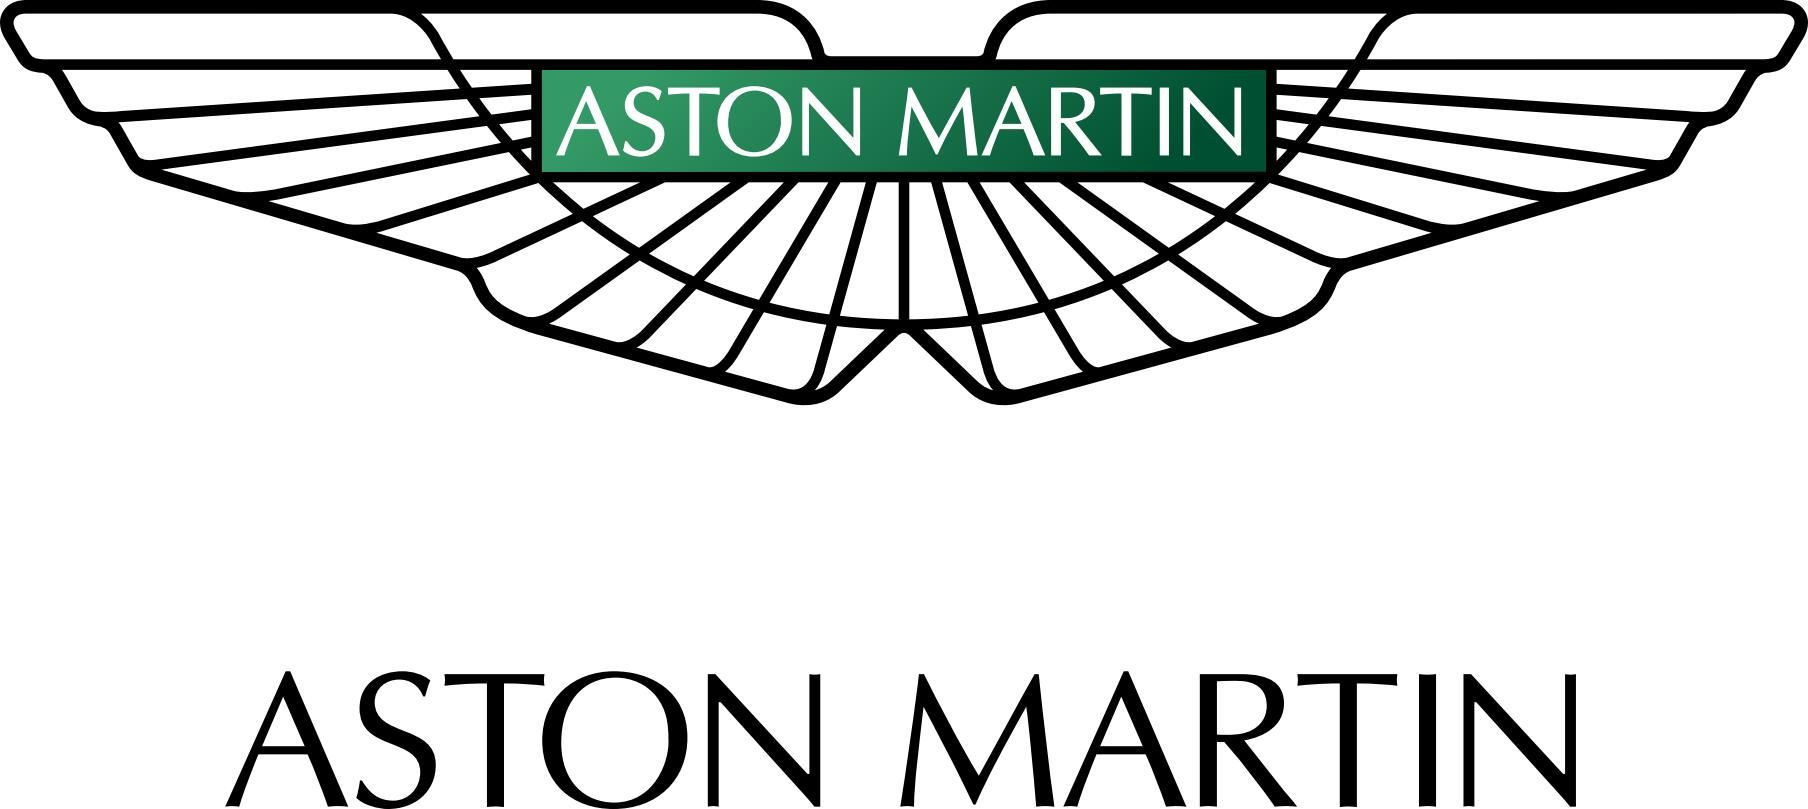 Luxury sports car logo sports car emblems sports cars - Find This Pin And More On Car And Motorcycle Logos By Infographics The Aston Martin Limited Is A British Manufacturer Of Luxury Sports Cars